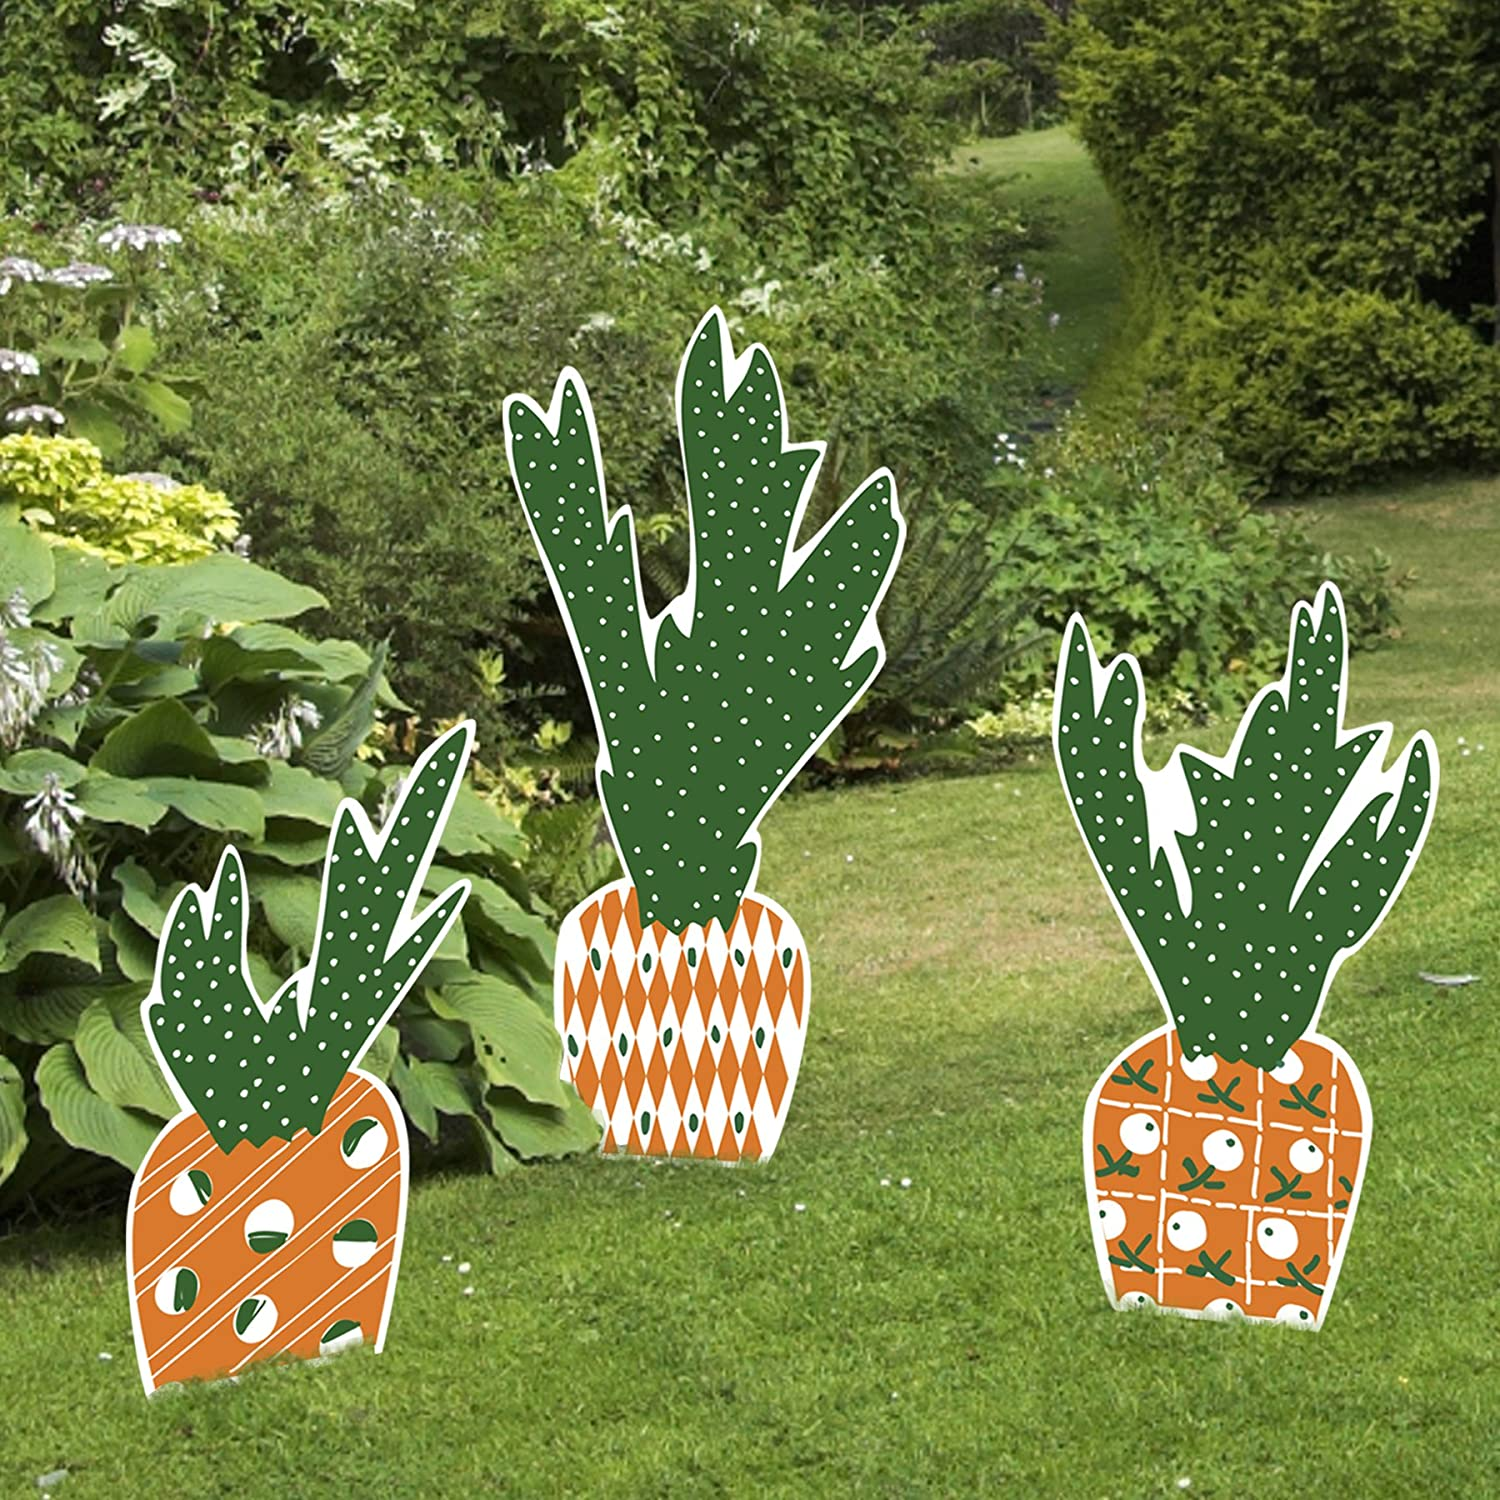 Outdoor Spring Decor: Outdoor Easter Decorations @BBT.com